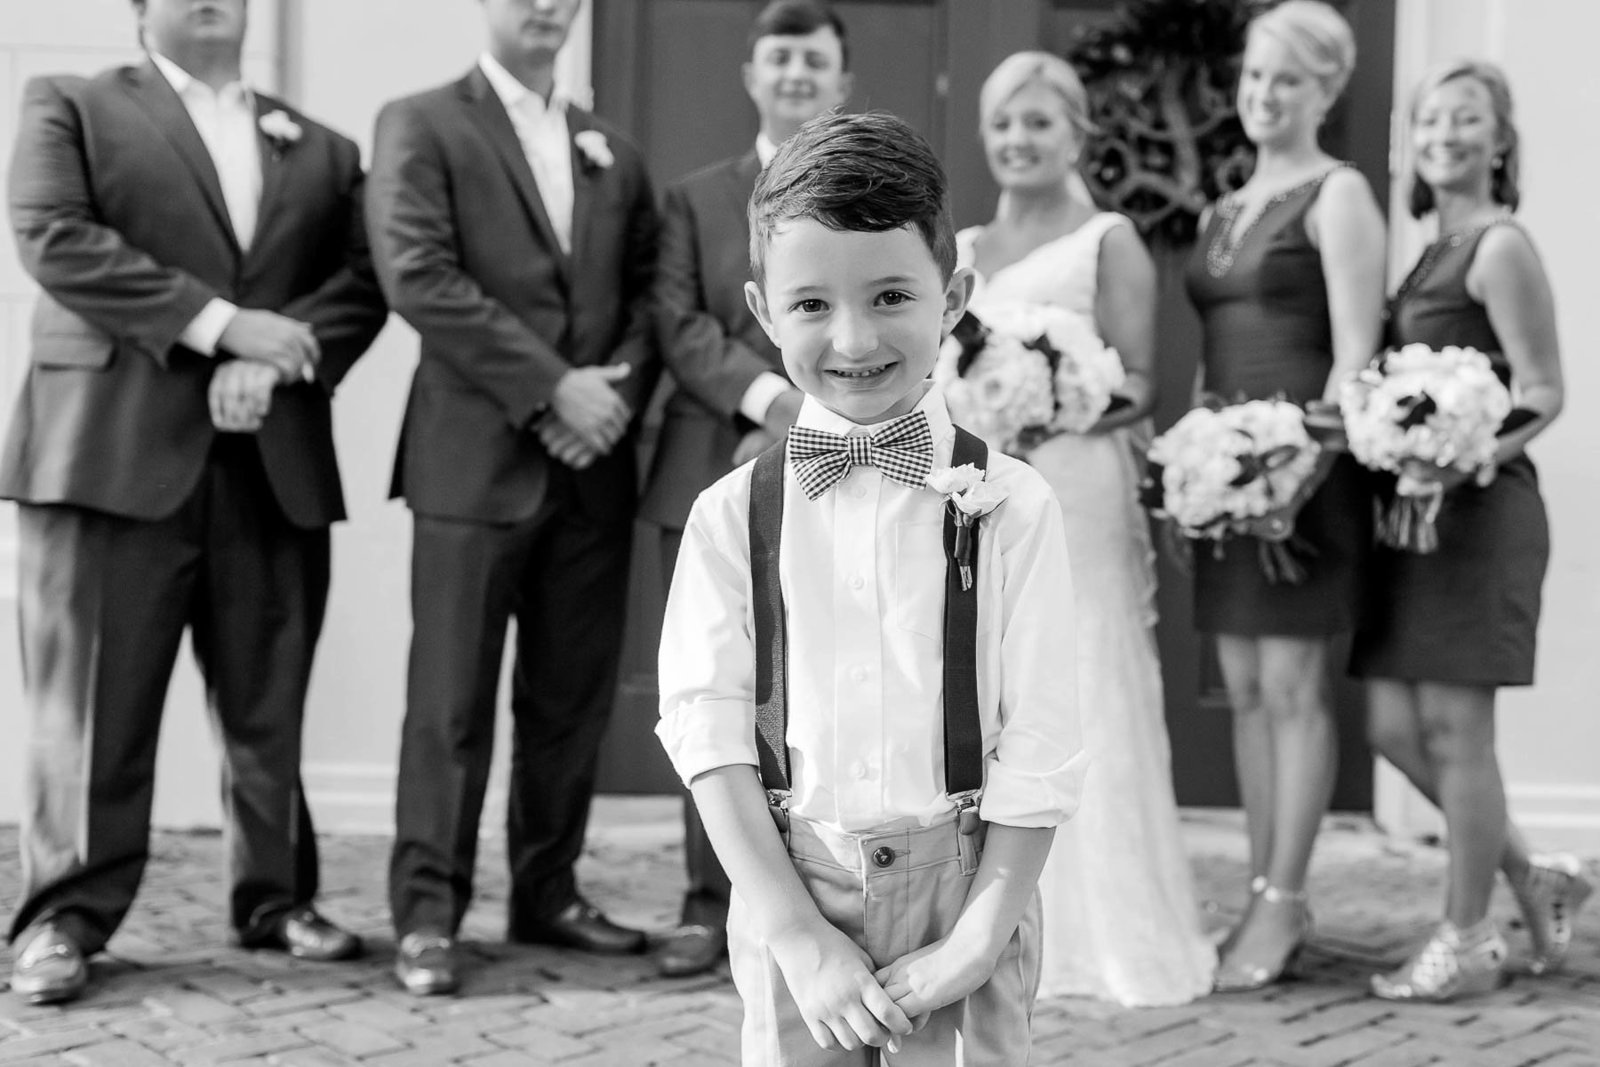 Ringbearer stands in forefront with wedding party behind him, Coleman Hall, Mt Pleasant, South Carolina